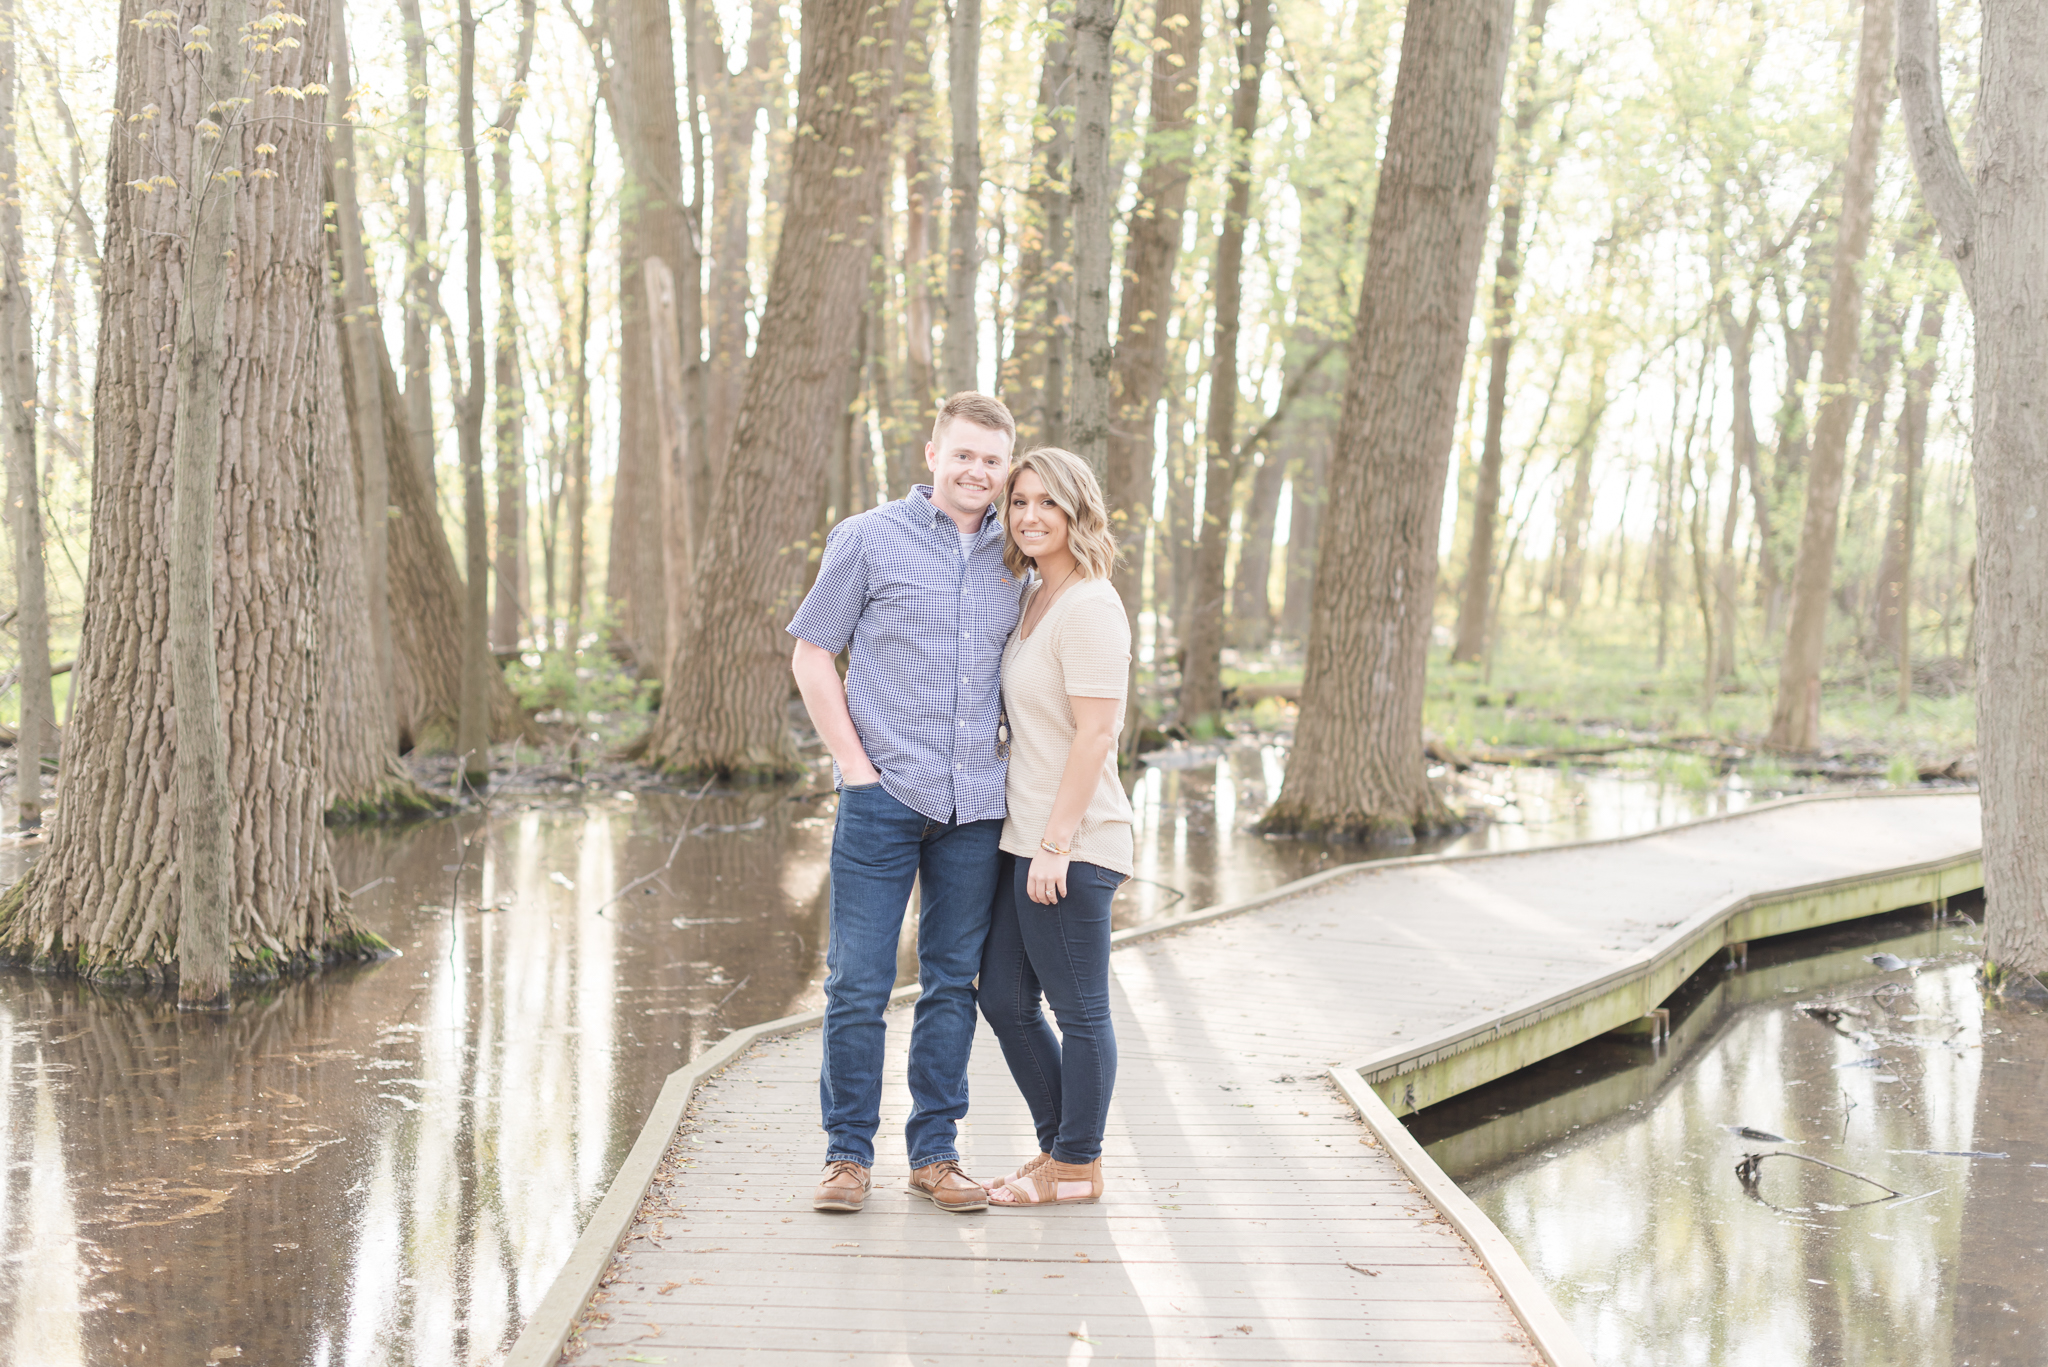 Richie Woods Nature Preserve and Mustard Seed Gardens Engagement Session Wedding Photos-4.jpg